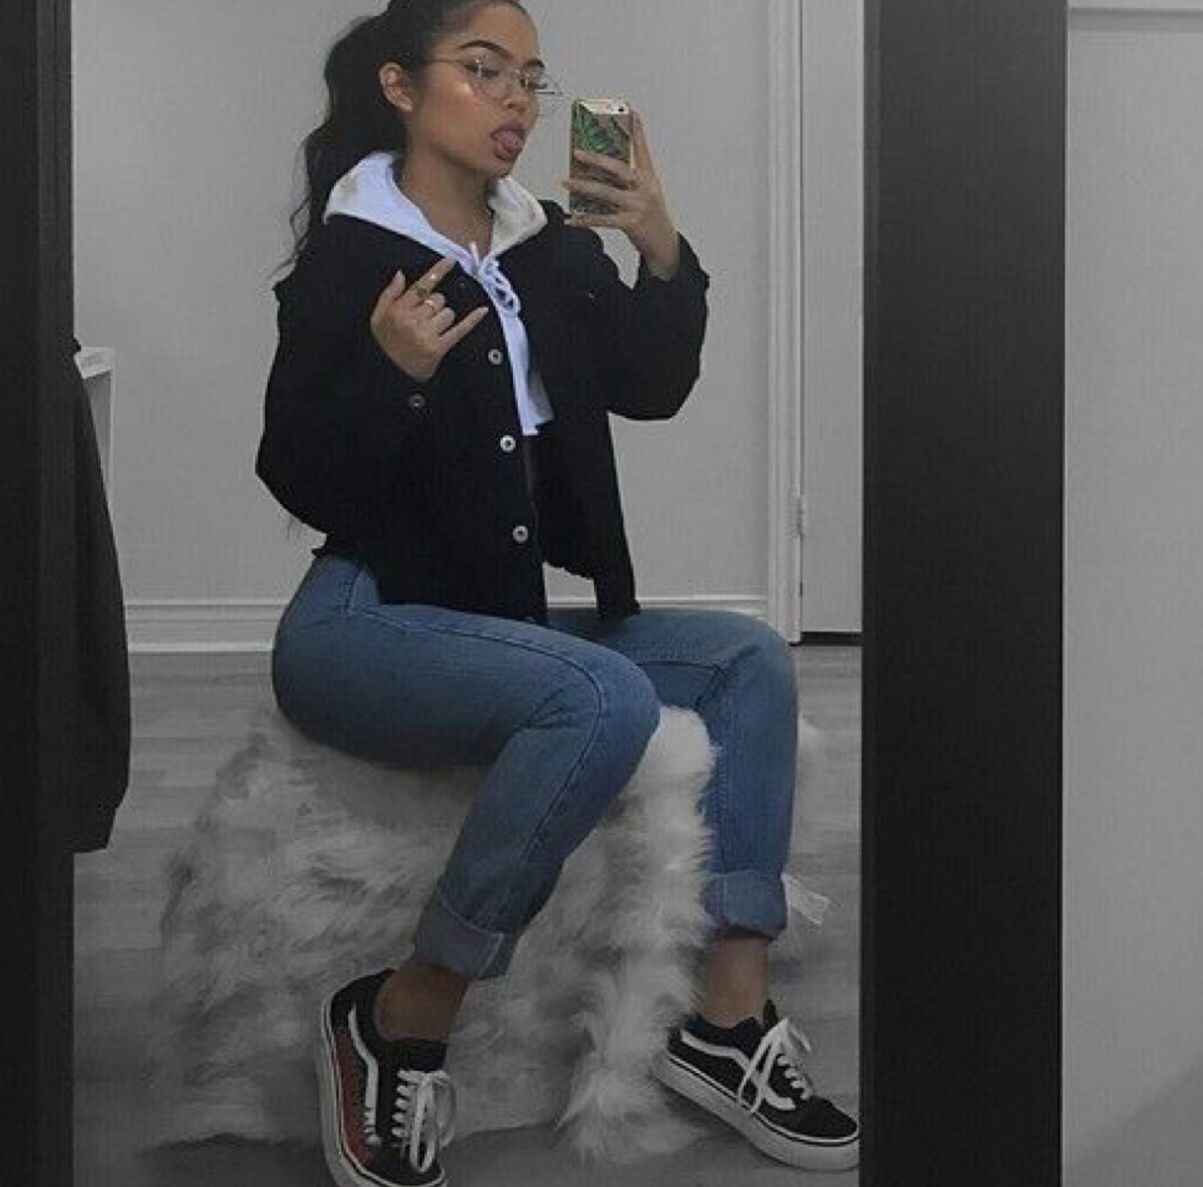 Alycastillo23 | Boujee outfits, Fashion, Tumblr outfits